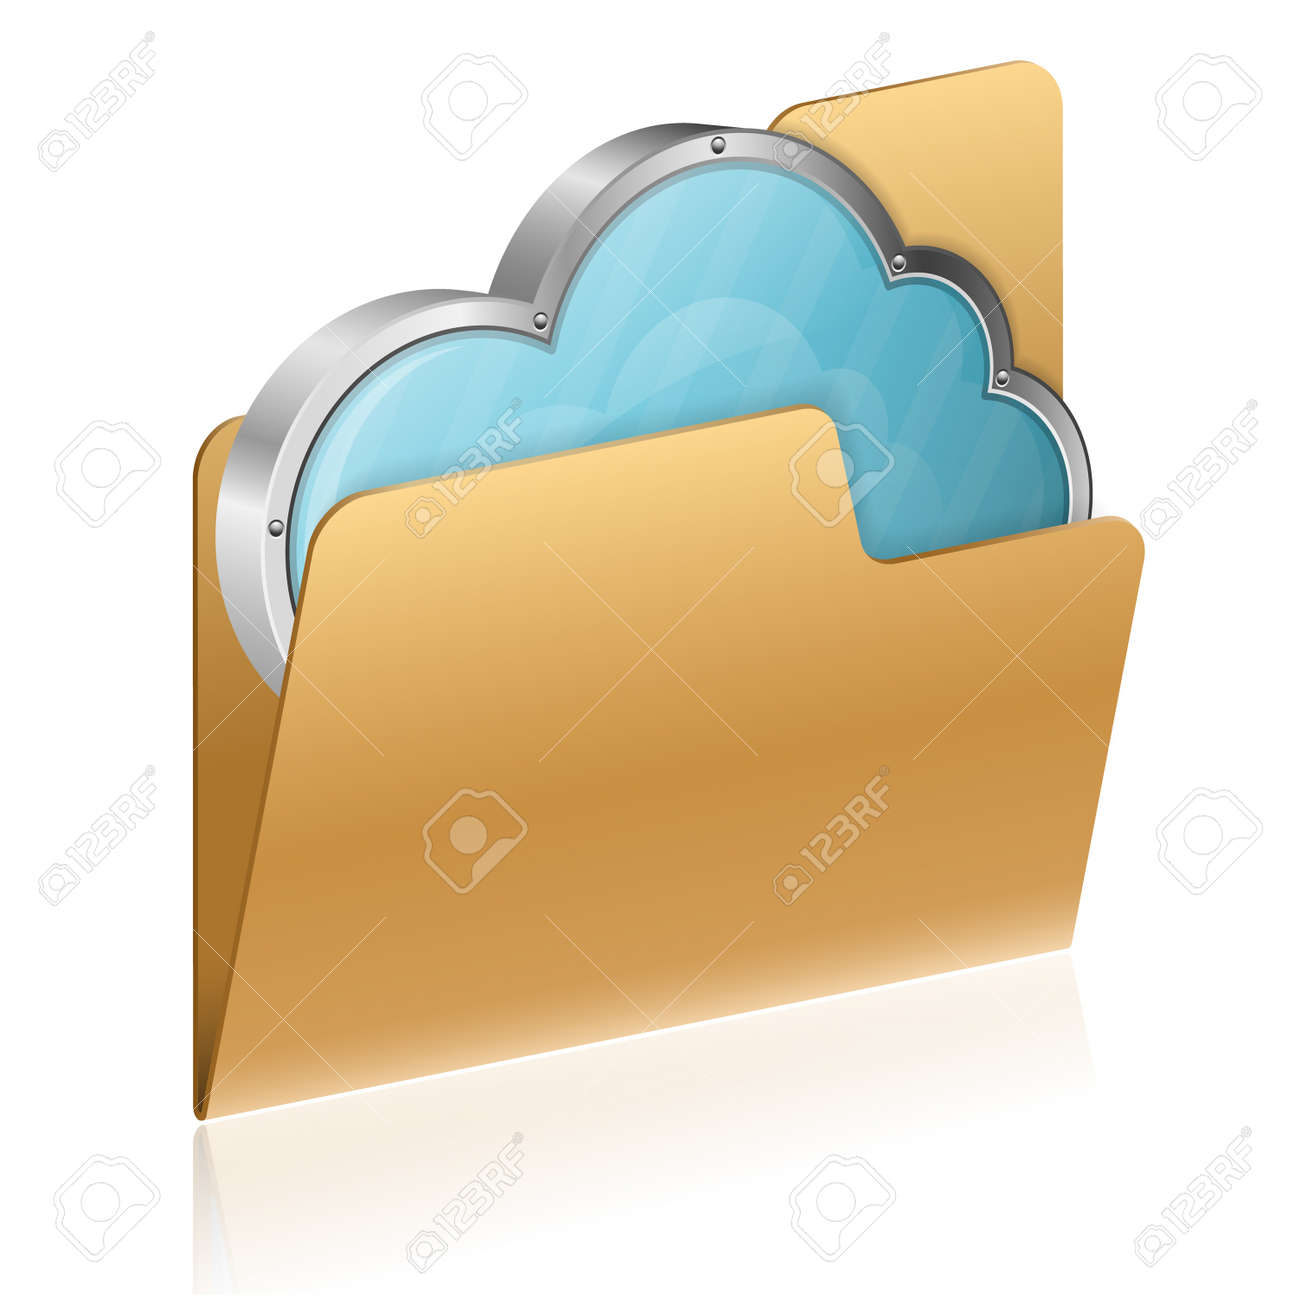 Cloud Computing Concept - Cloud in Computer Folder, isolated on white, vector icon Stock Vector - 16221627